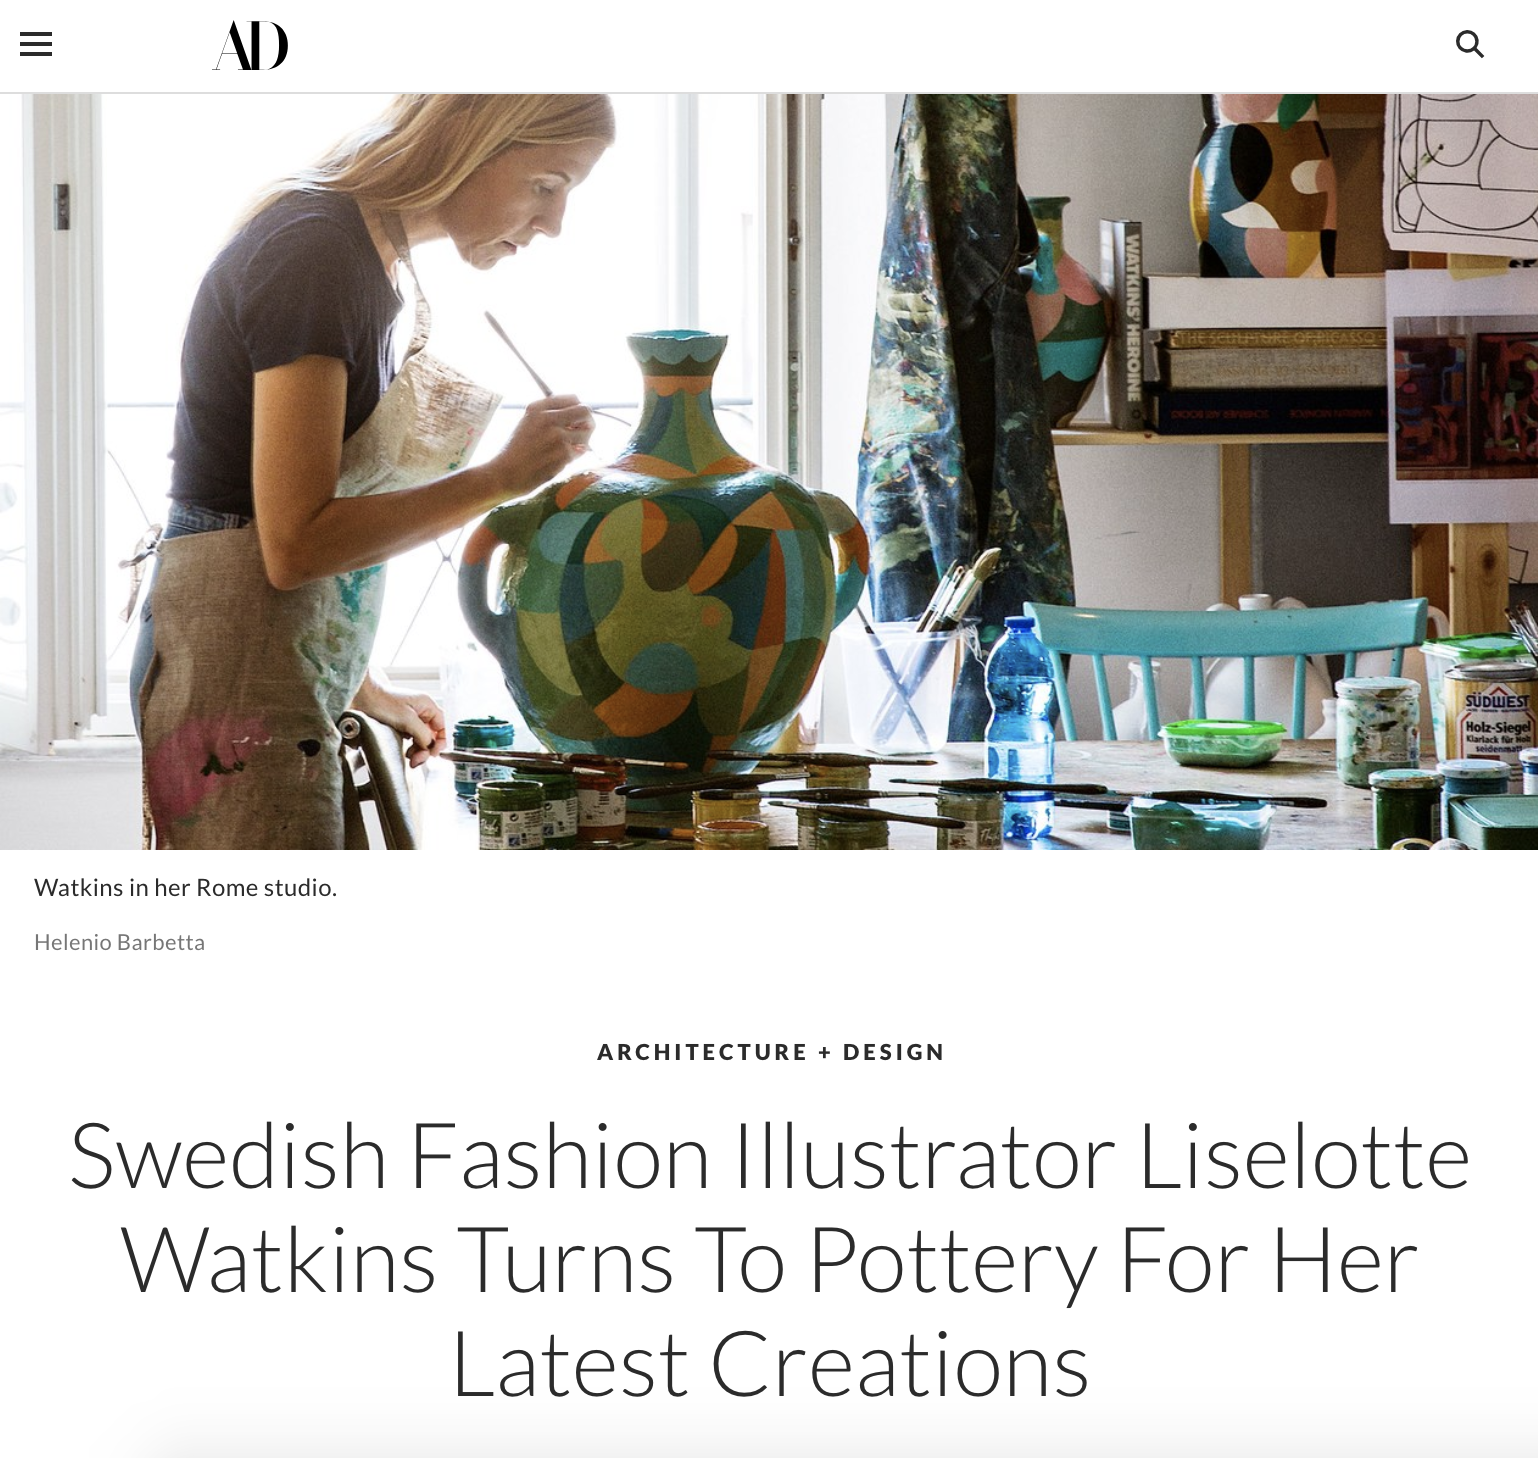 ARCHITECTURAL DIGEST US  https://www.architecturaldigest.com/story/swedish-fashion-illustrator-liselotte-watkins-turns-to-pottery-for-her-latest-creations